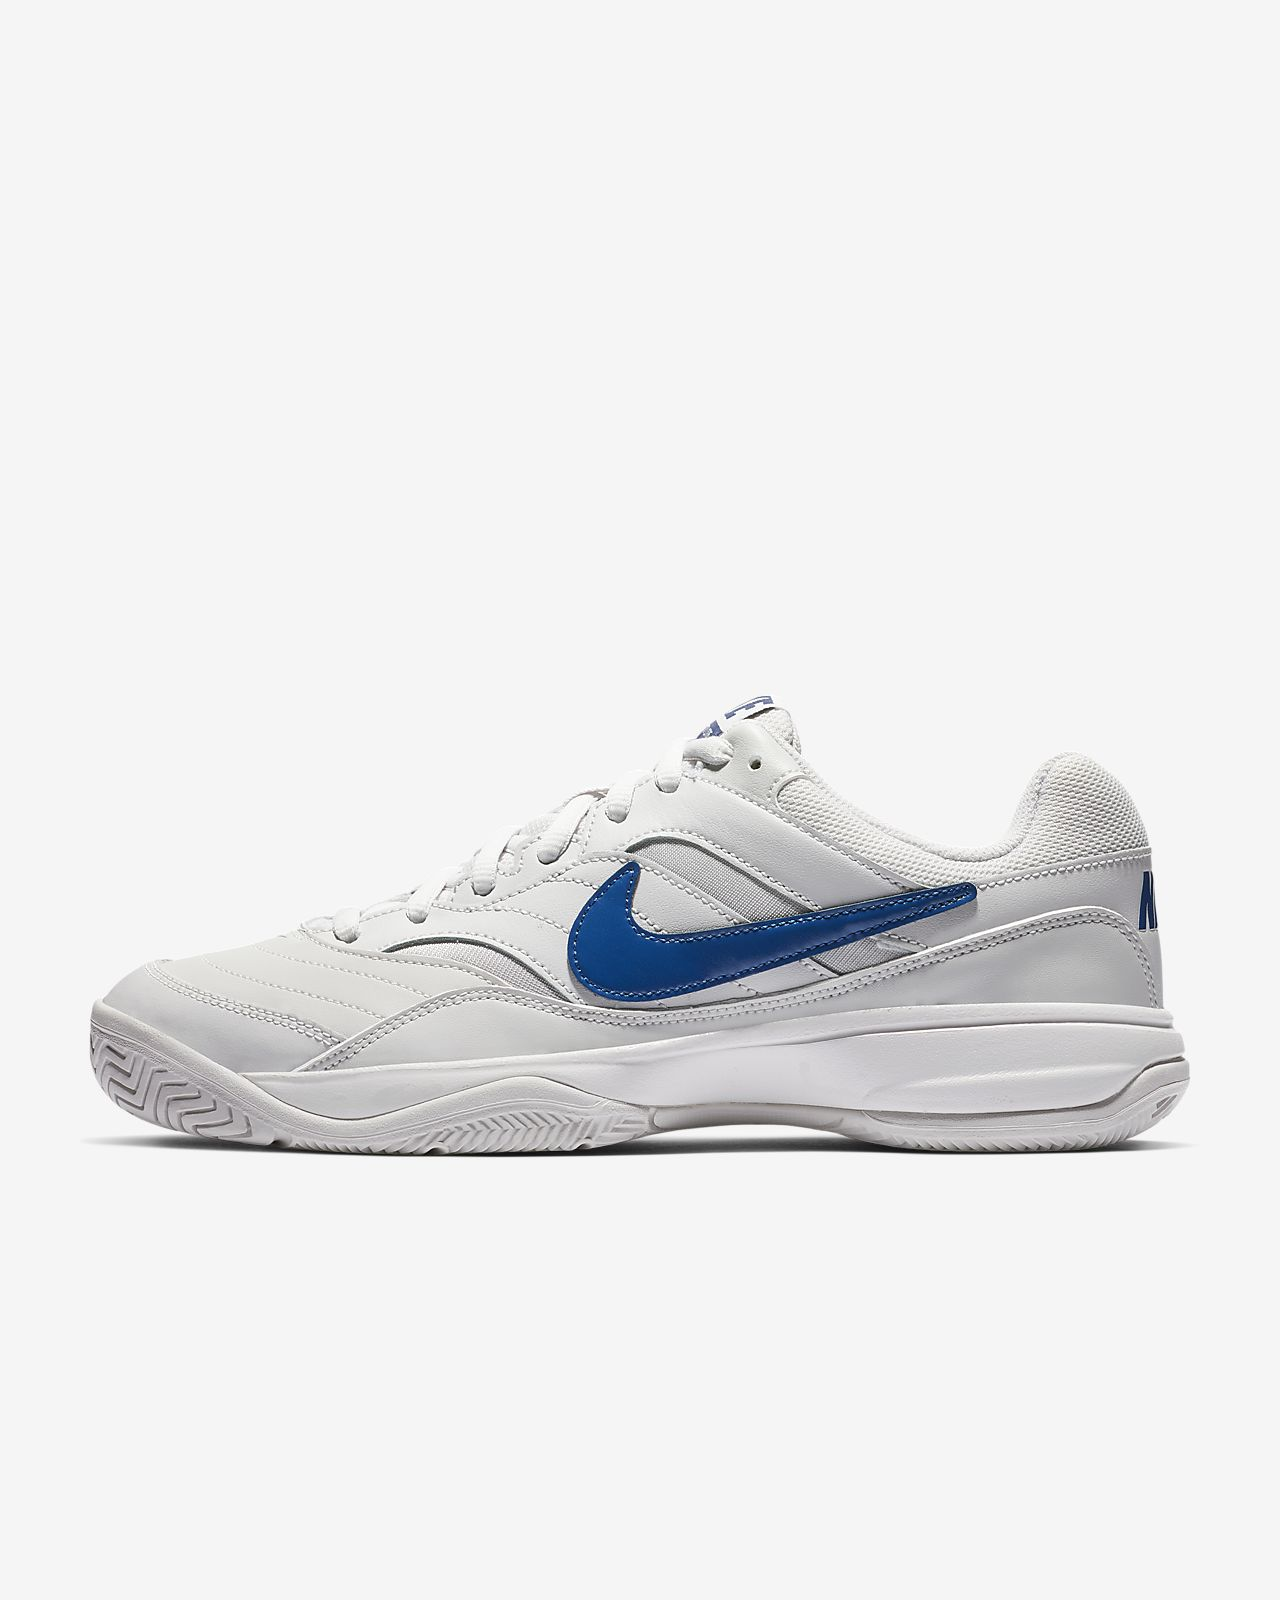 bdb81380b7e5b NikeCourt Lite Men s Hard Court Tennis Shoe. Nike.com